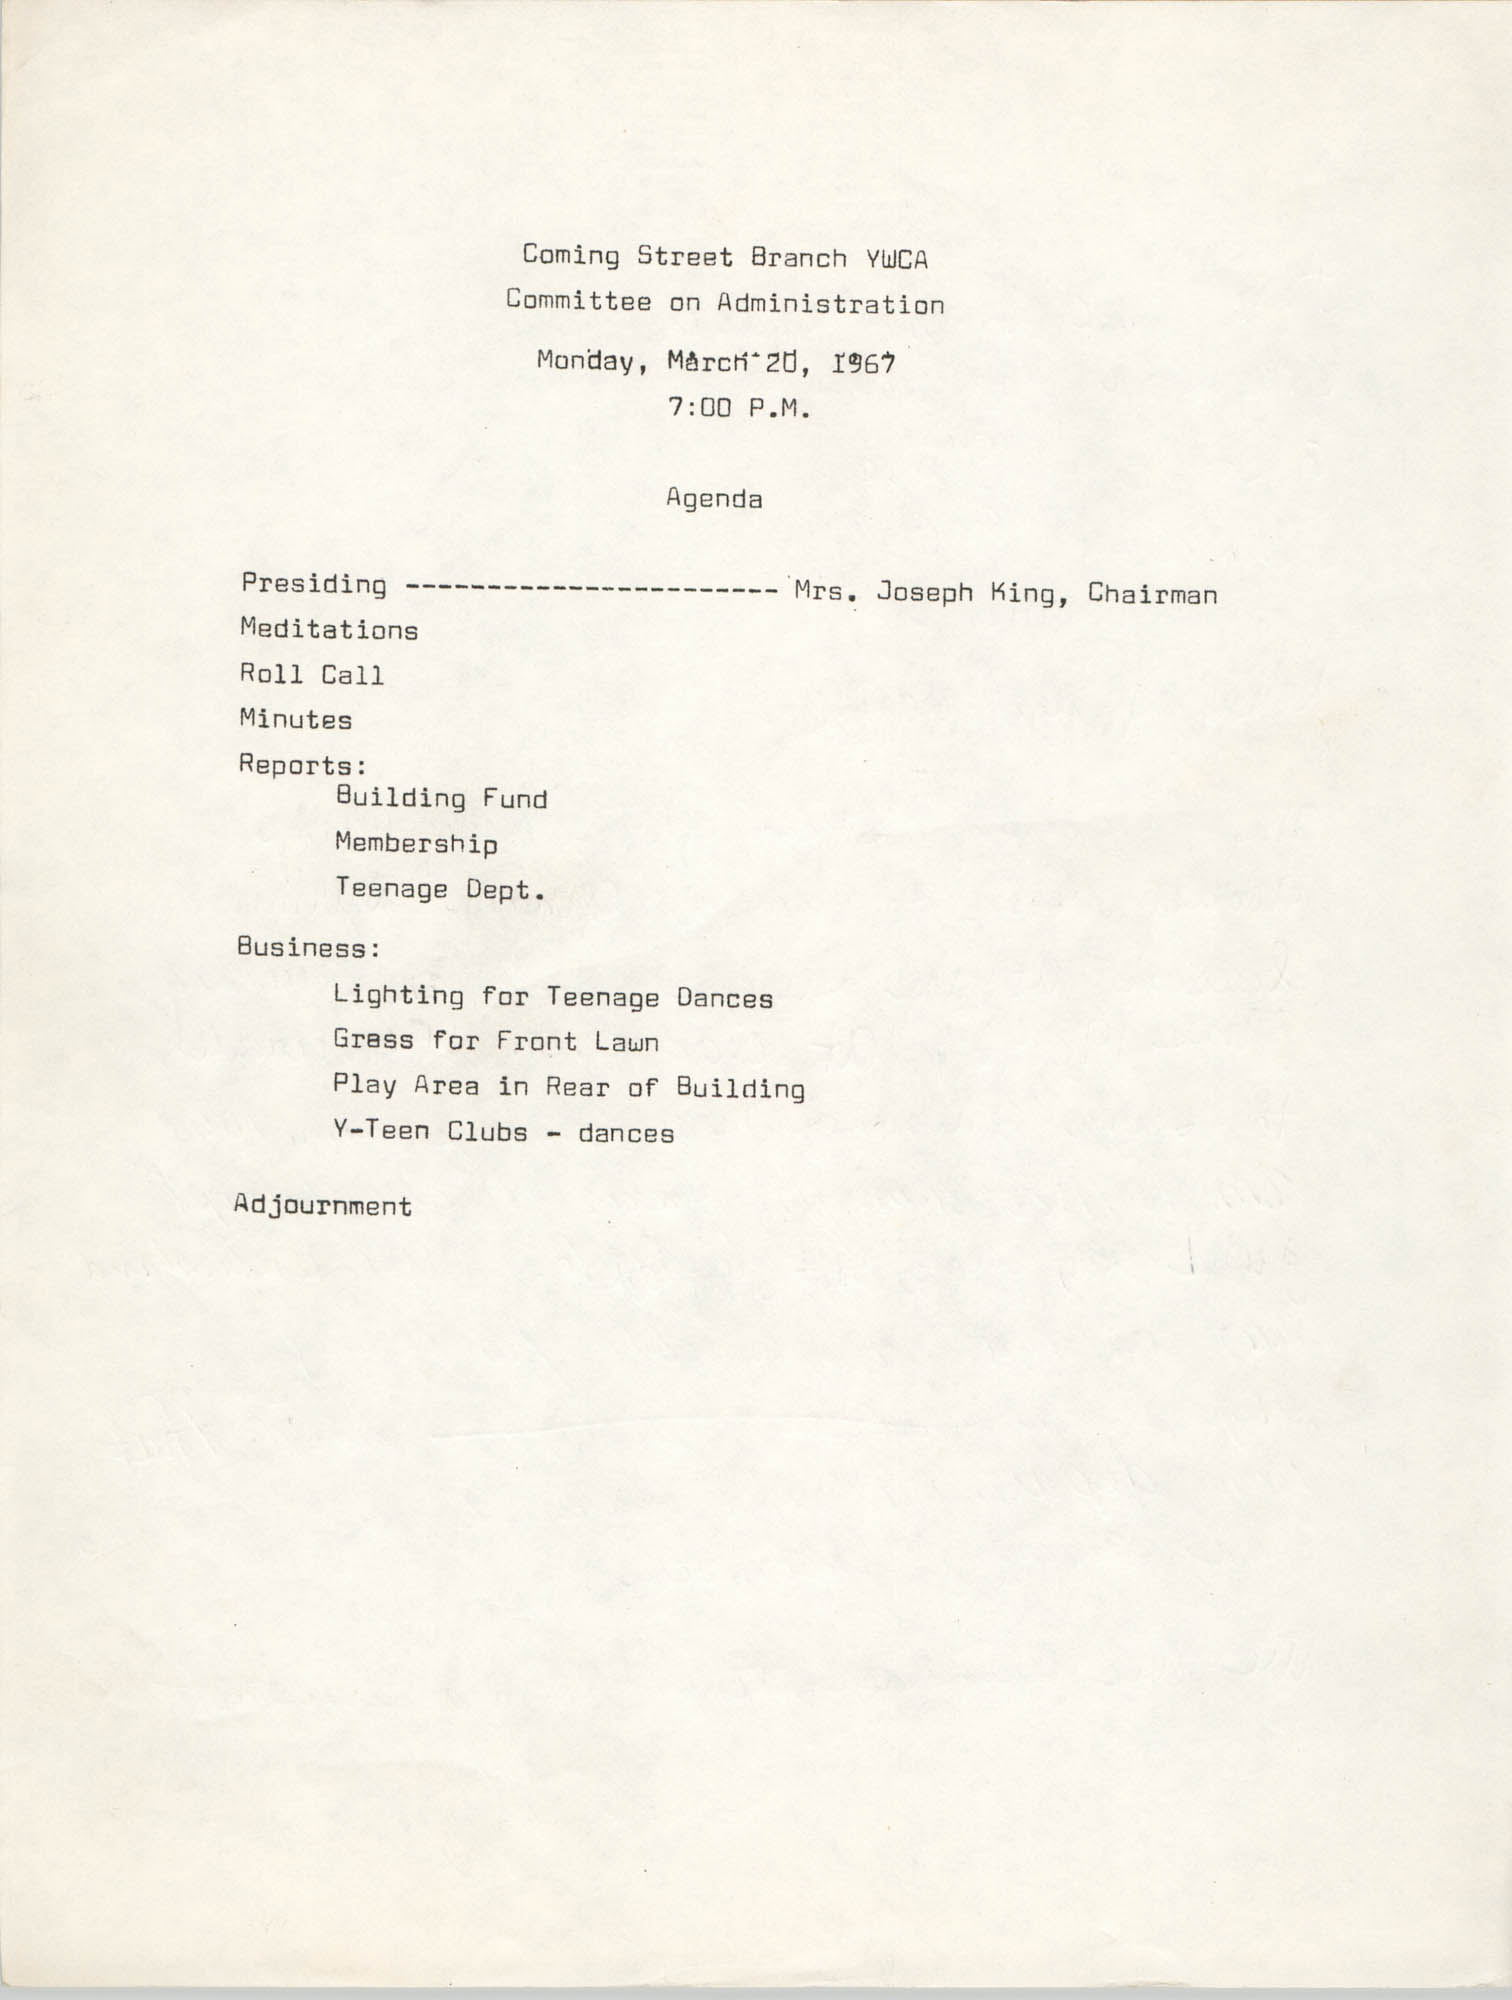 Agenda, Coming Street Y.W.C.A. Committee on Administration, March 20, 1967